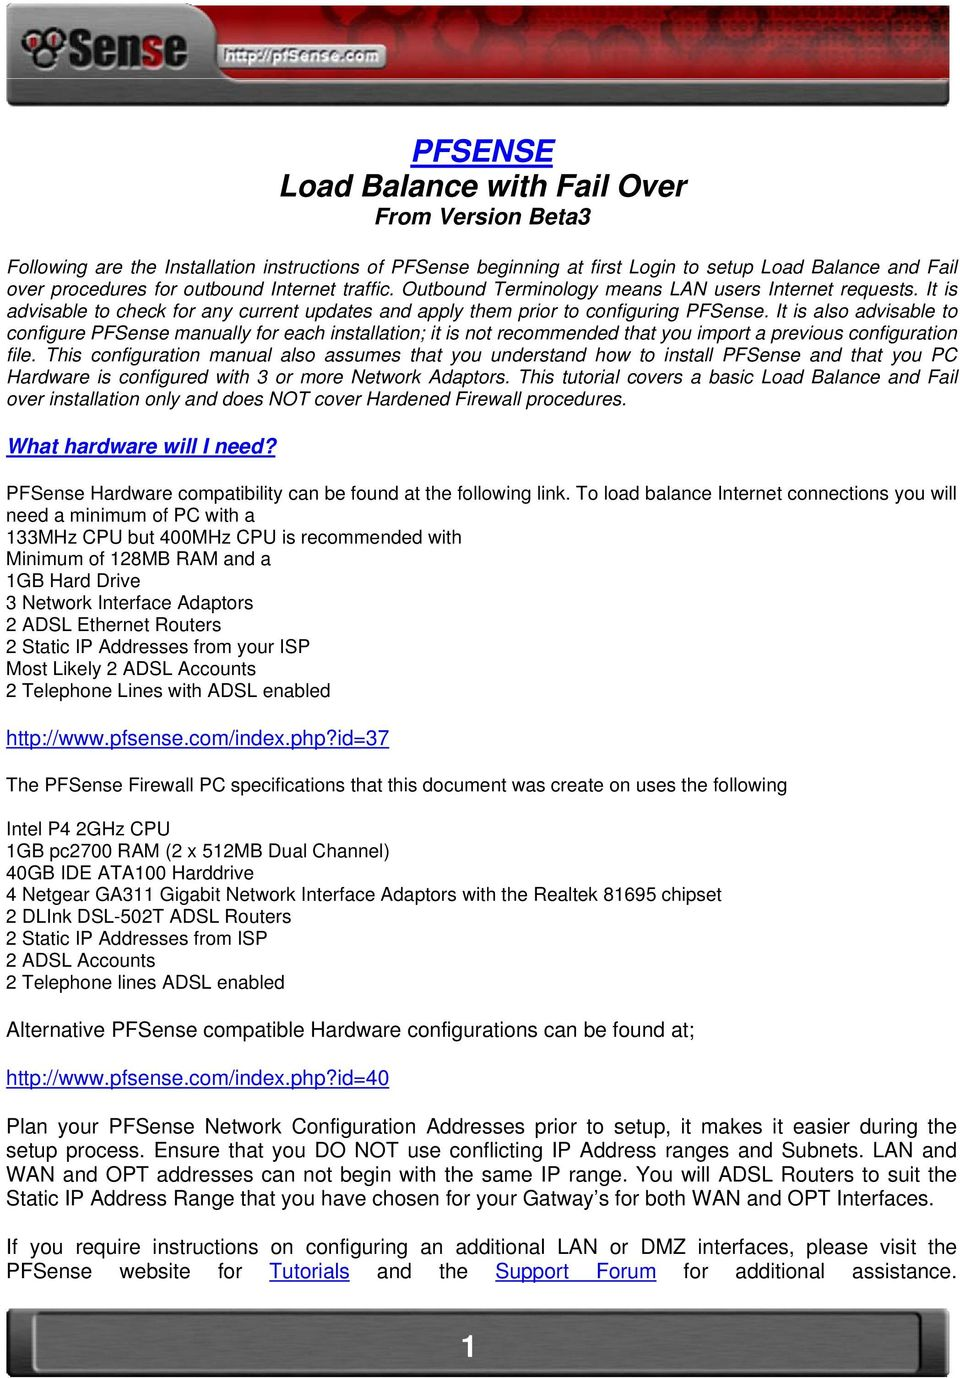 PFSENSE Load Balance with Fail Over From Version Beta3 - PDF